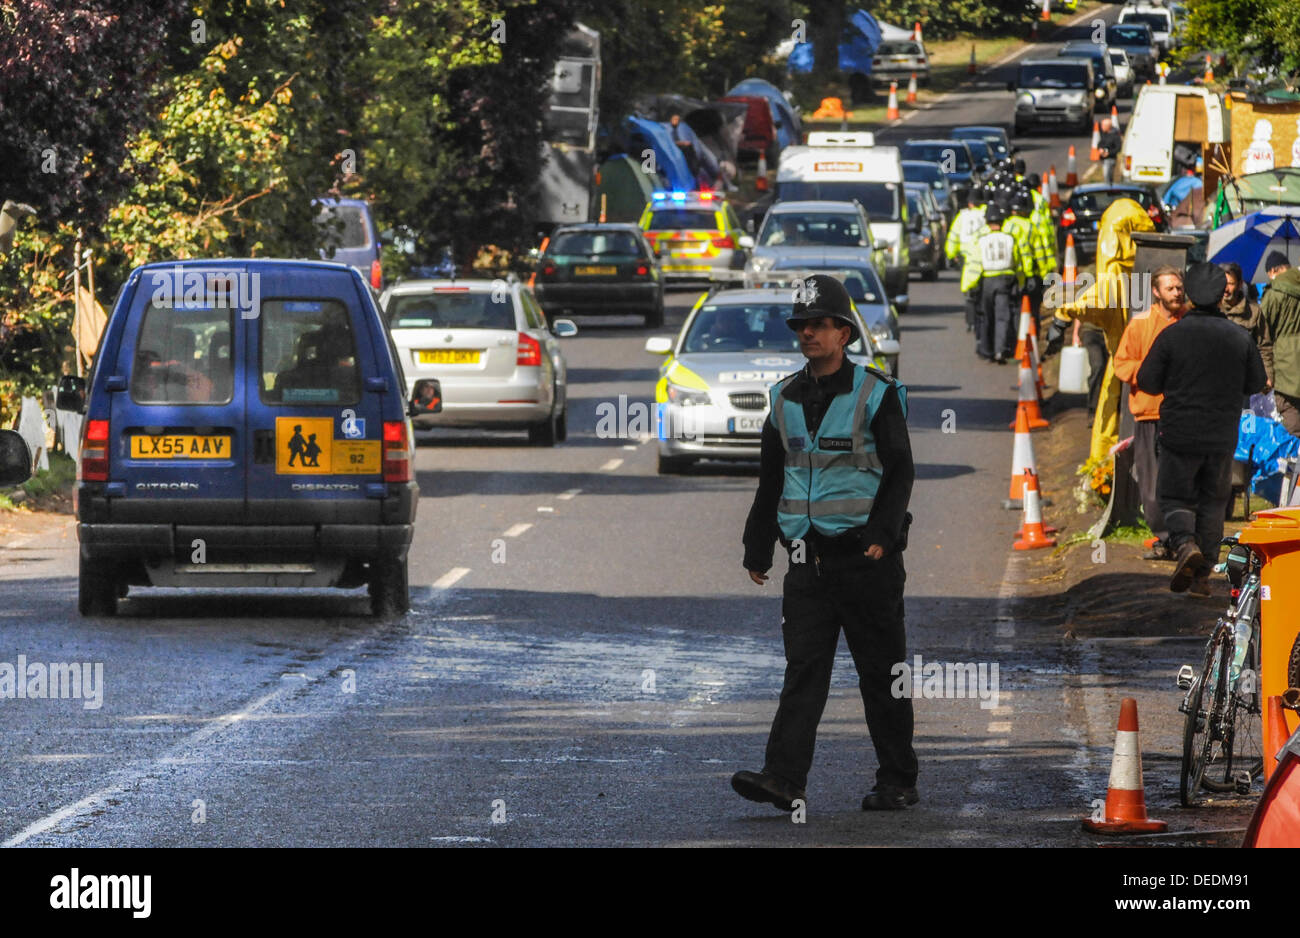 Balcombe,West Sussex, UK. 16th Sept, 2013. Traffic is soon flowing again on the road to Cuadrilla after Police escort another lorry unhindered by protesters. Peaceful atmosphere prevails as protesters chat with Police Officers.   Environmentalist rejoiced after todays failed attempt by West Sussex County  in the high court, due flawed case, to evict them from the road side camp. © David Burr/Alamy Live News - Stock Image